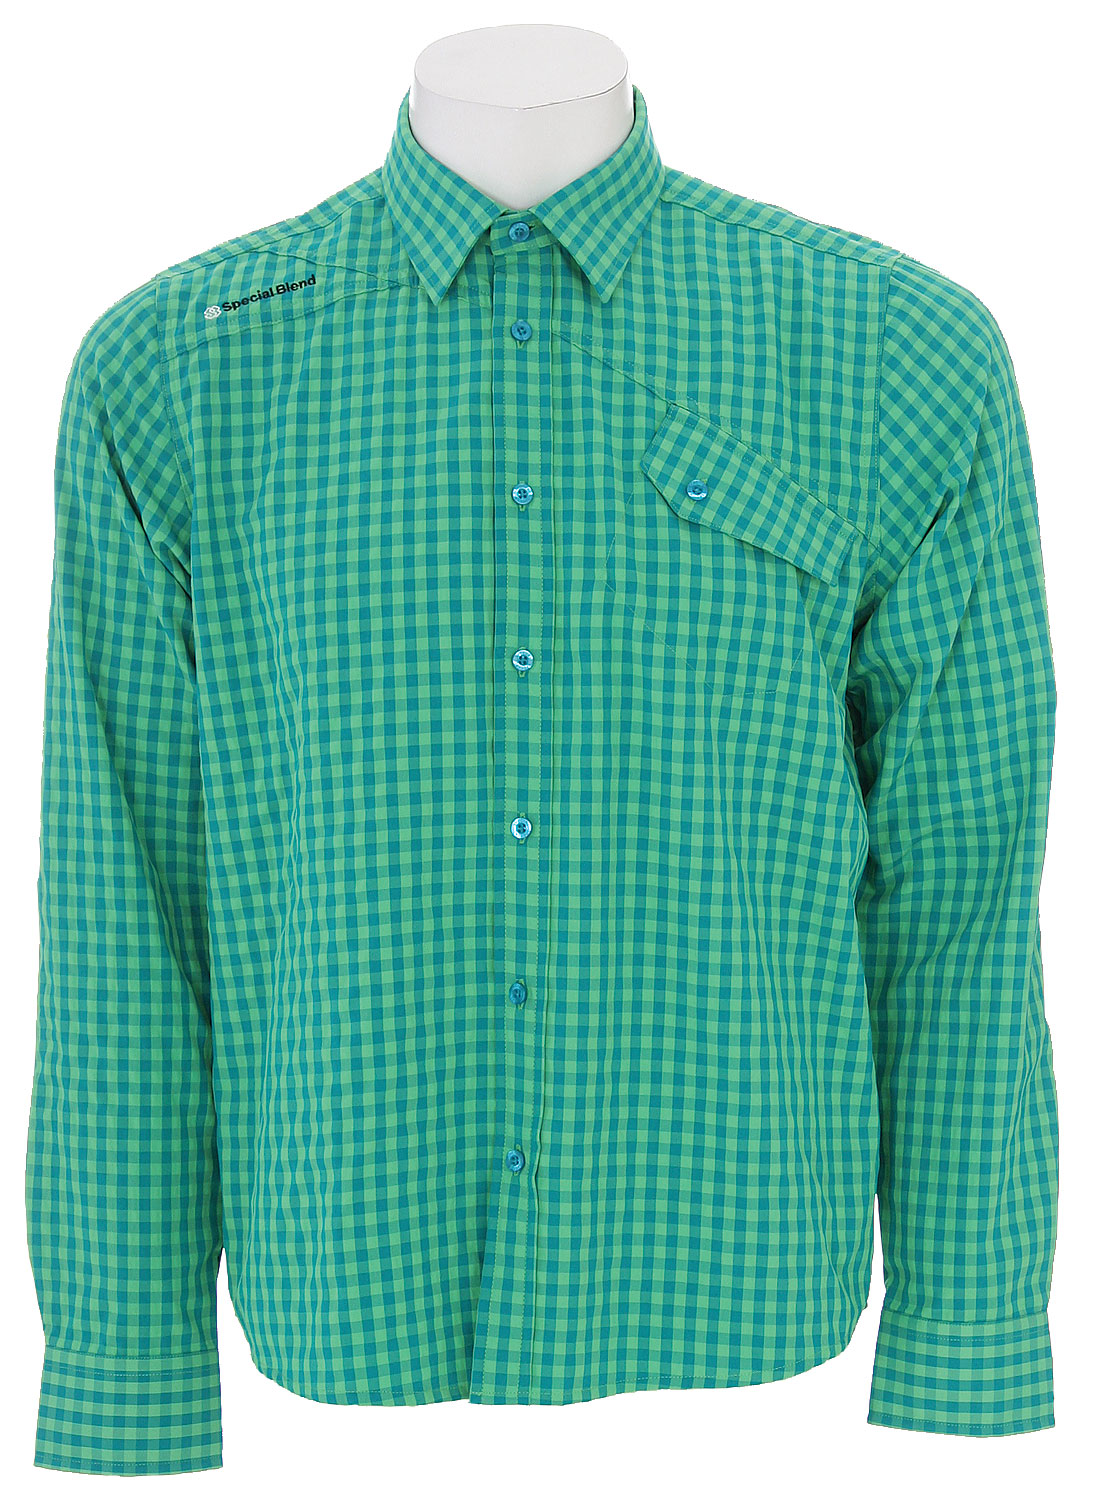 Entertainment The Special Blend Dress Up Shirt - Small Gingham / Wicking Properties / 62% Polyester, 38% Nylon - $20.96